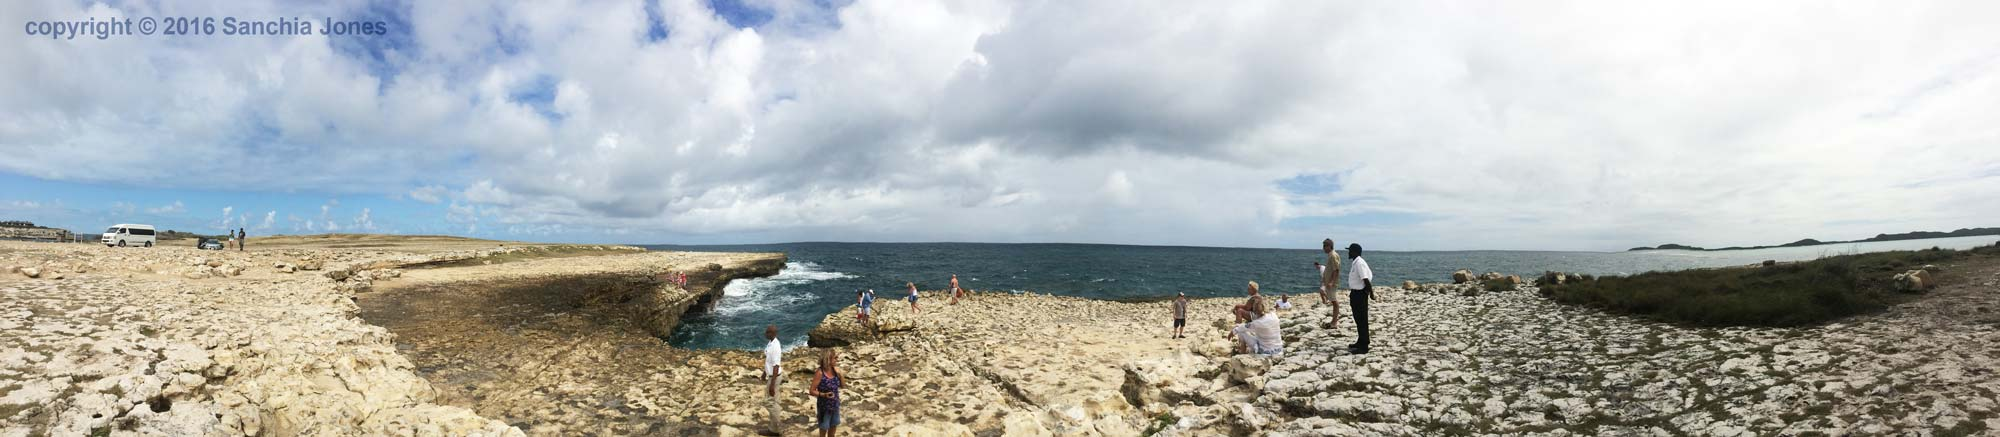 Panoramic of Devils Bridge